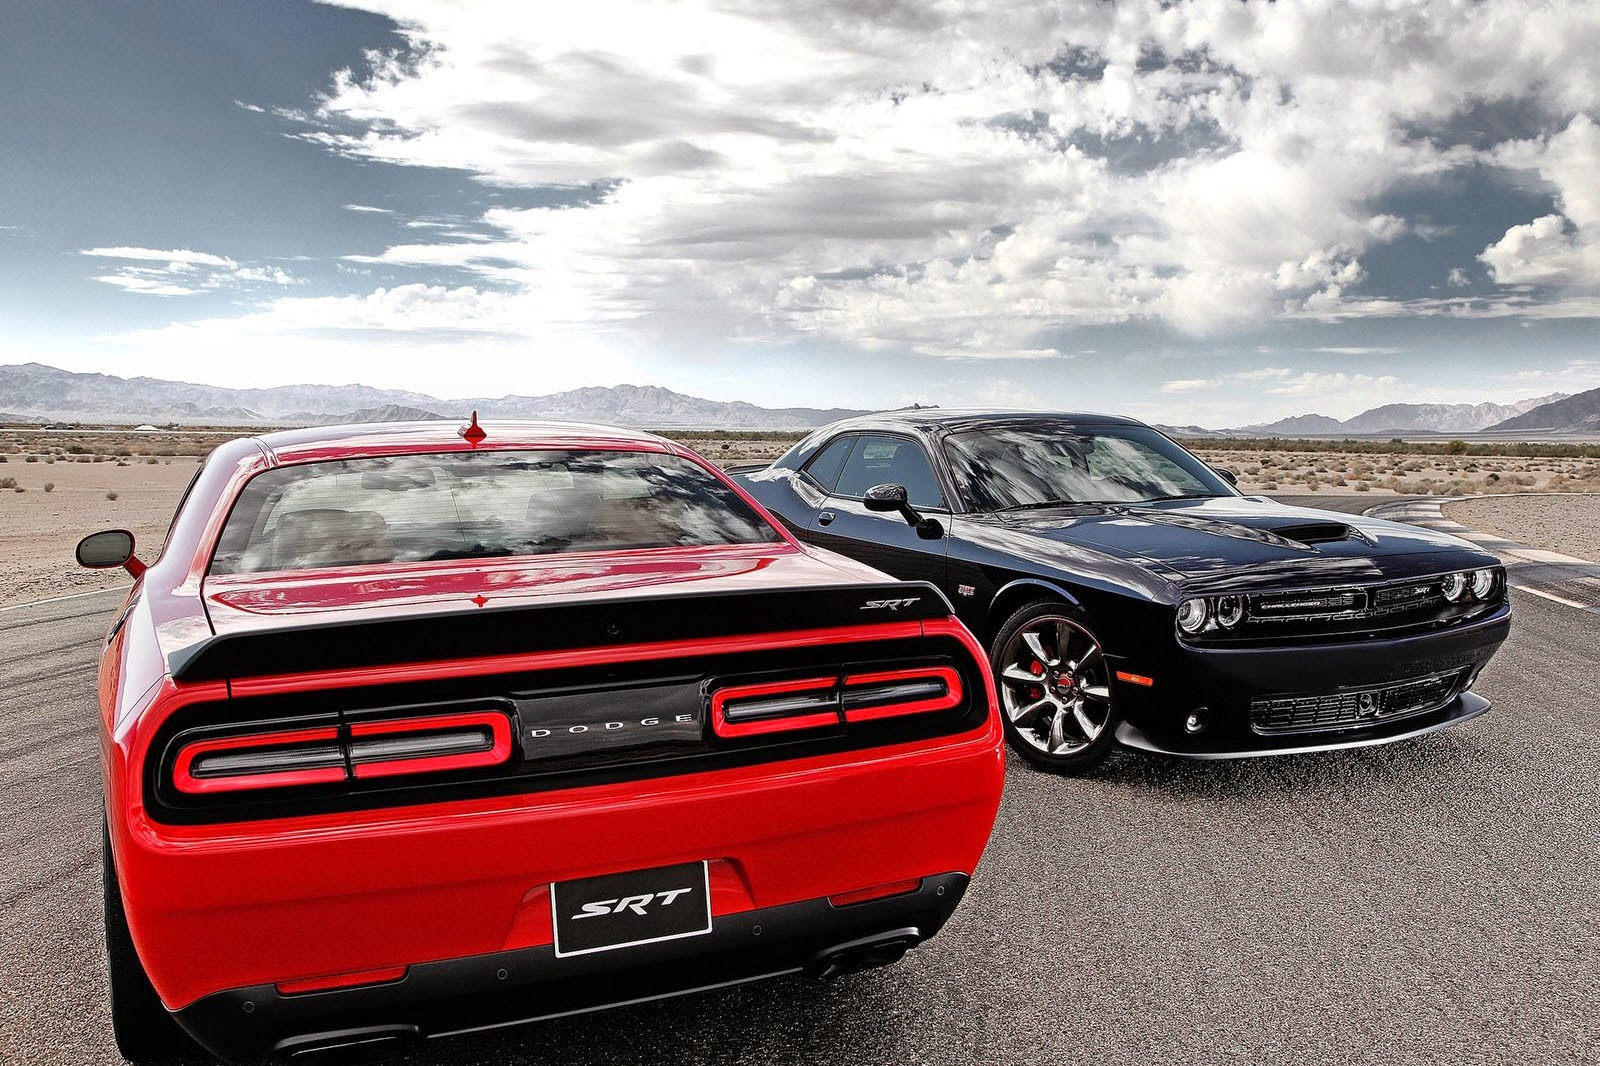 Could the forthcoming hellcat supercharged hemi put the challenger on top of the viper? Auto Car Wallpapers 2015 Dodge Challenger Srt Hellcat Wallpapers